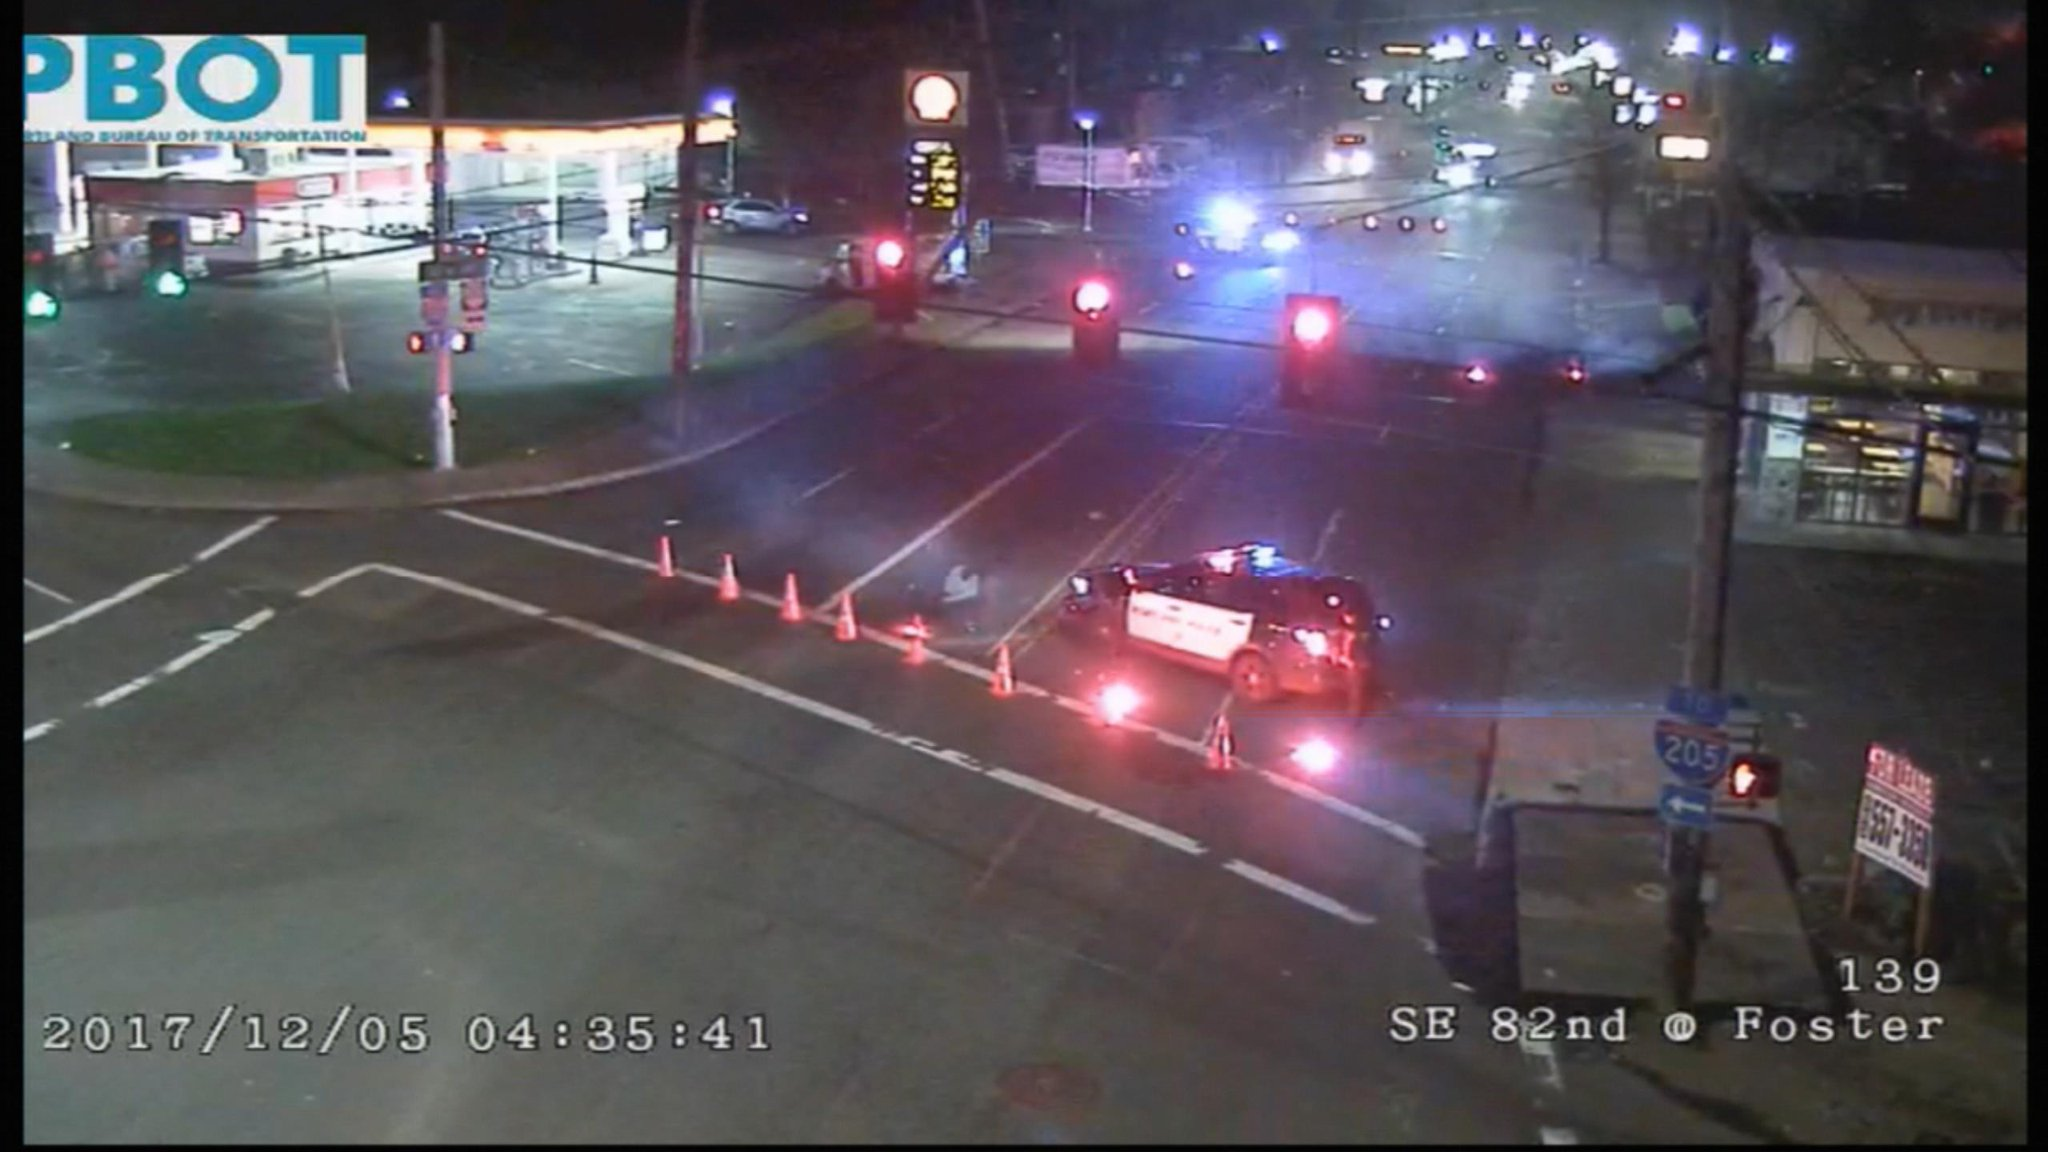 Police officers blocked the intersection of SE 82nd and SE Foster Rd. the morning of Tuesday, Dec. 5, 2017. They say a suspect drove a stolen vehicle into a power pole and fled the scene. ODOT photo{&amp;nbsp;}<p></p>